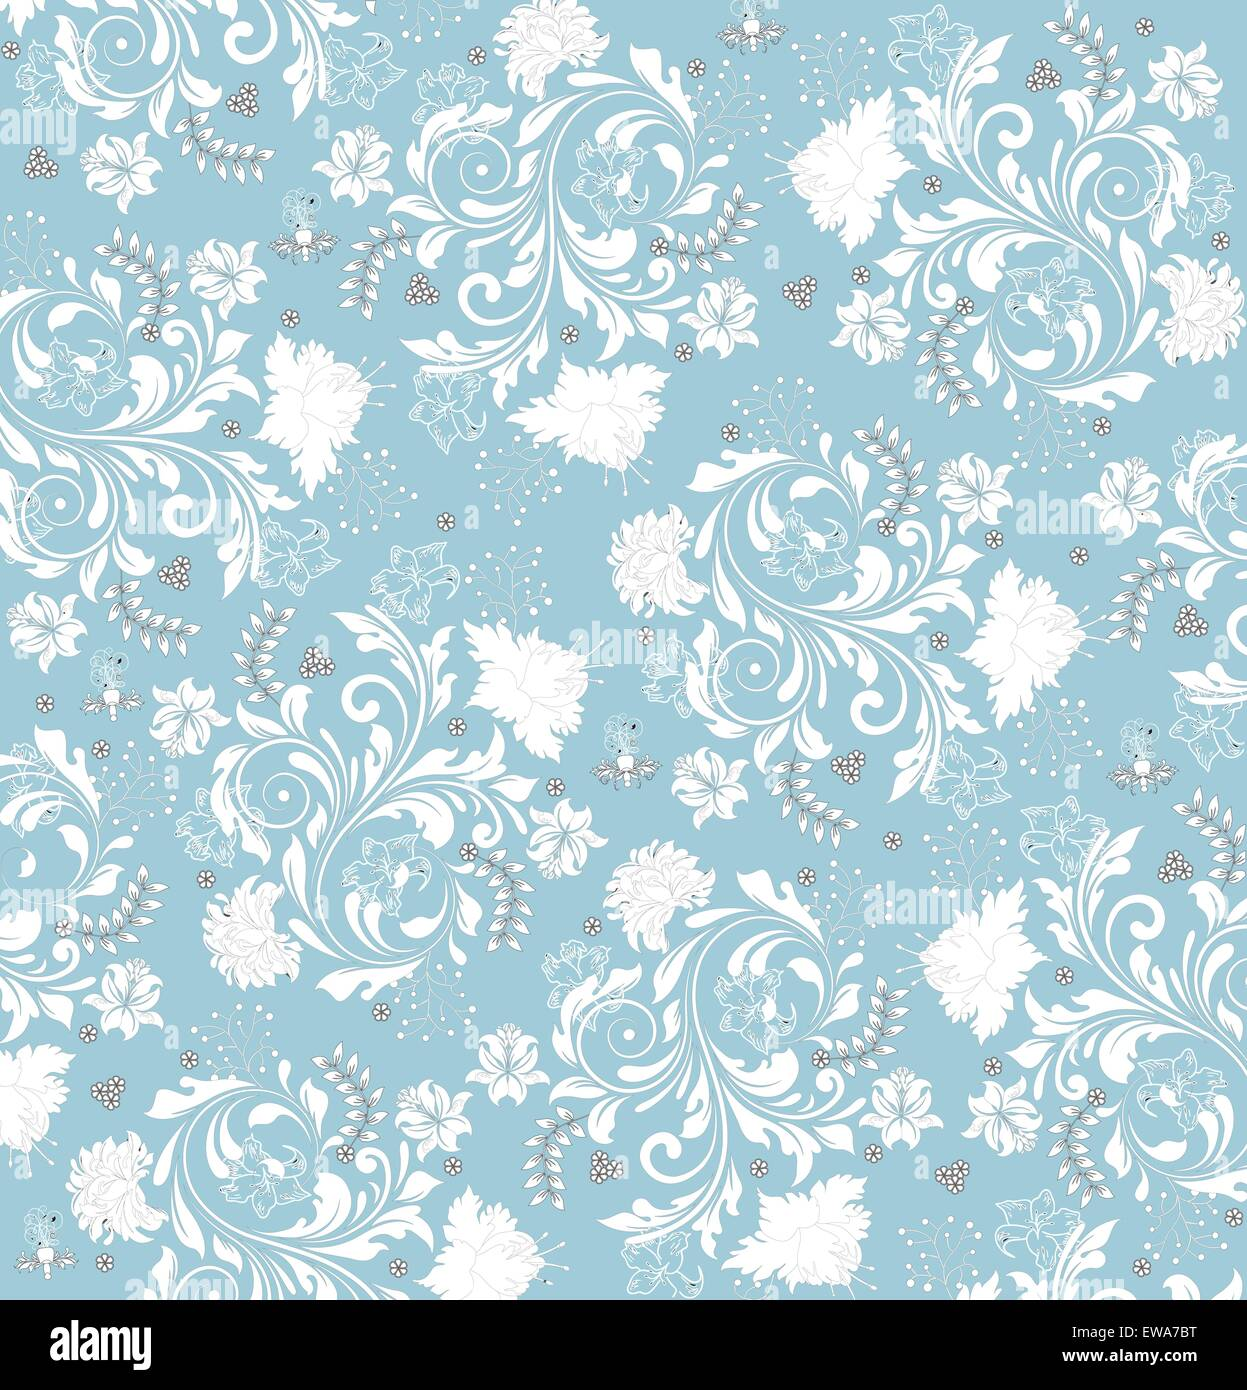 Blue Modern Wallpaper Texture Vintage Background With Ornate Elegant Retro Abstract